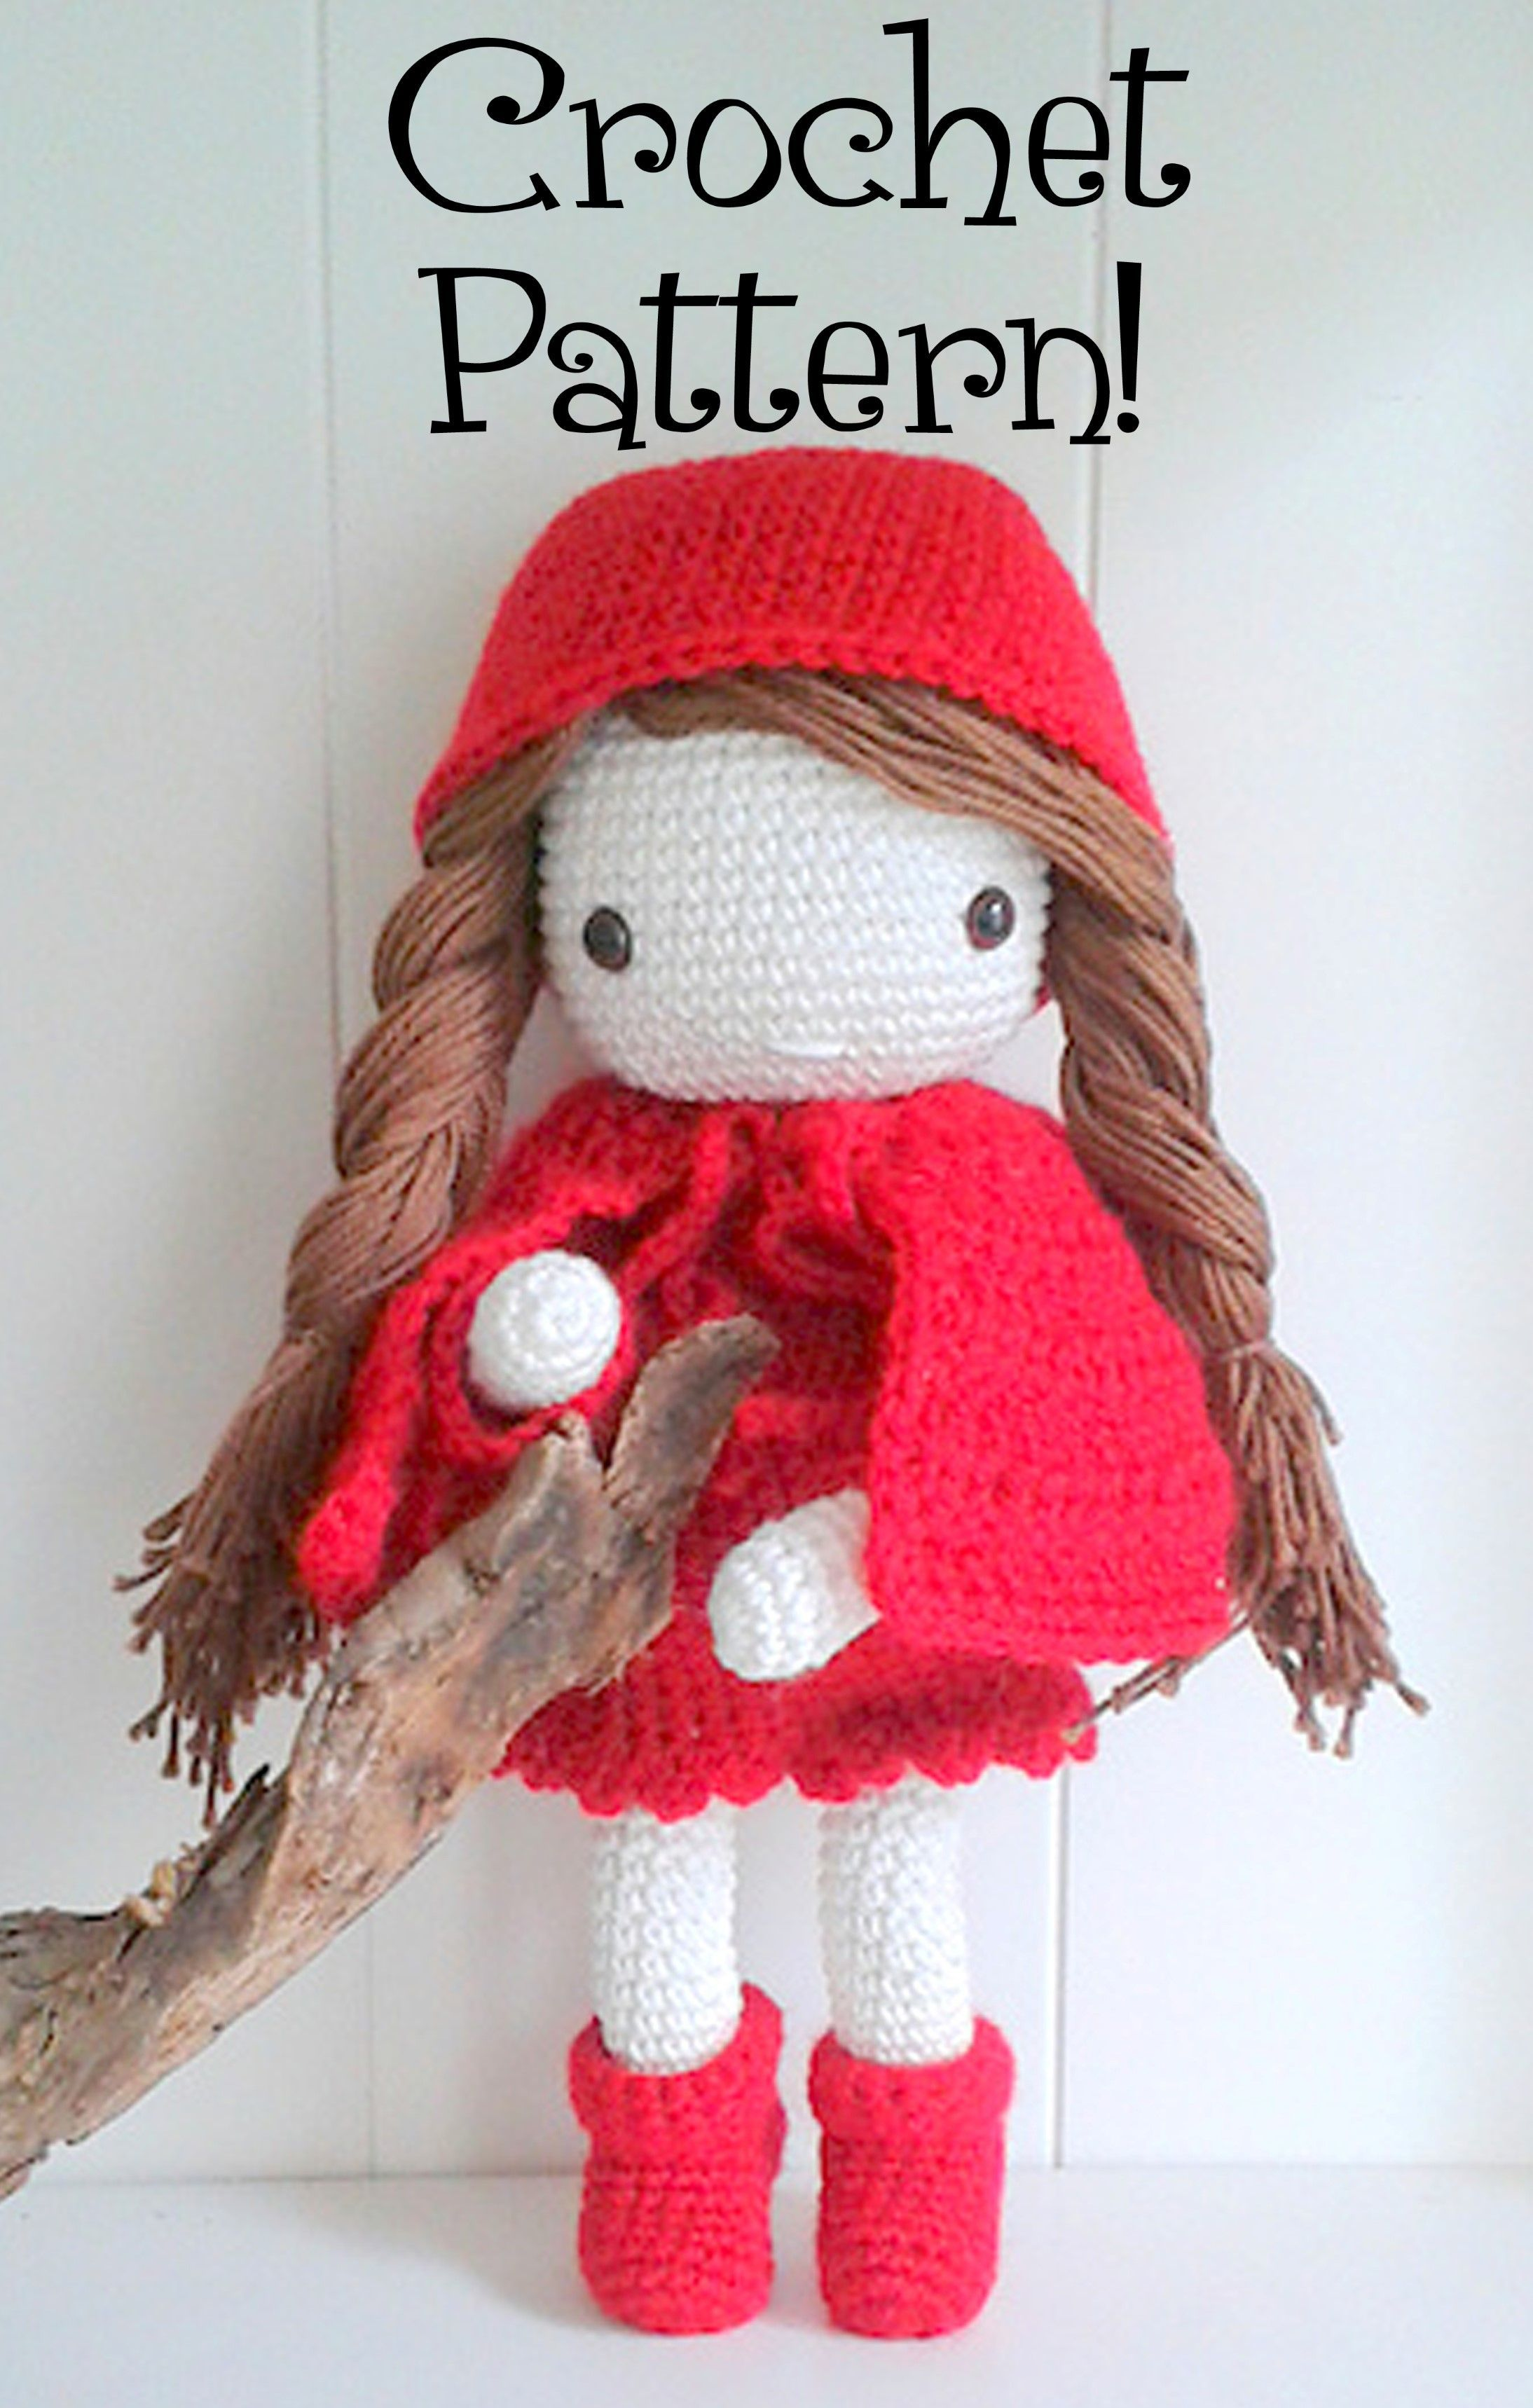 My Crochet Doll: A fabulous crochet doll pattern with over 50 cute ... | 3437x2188